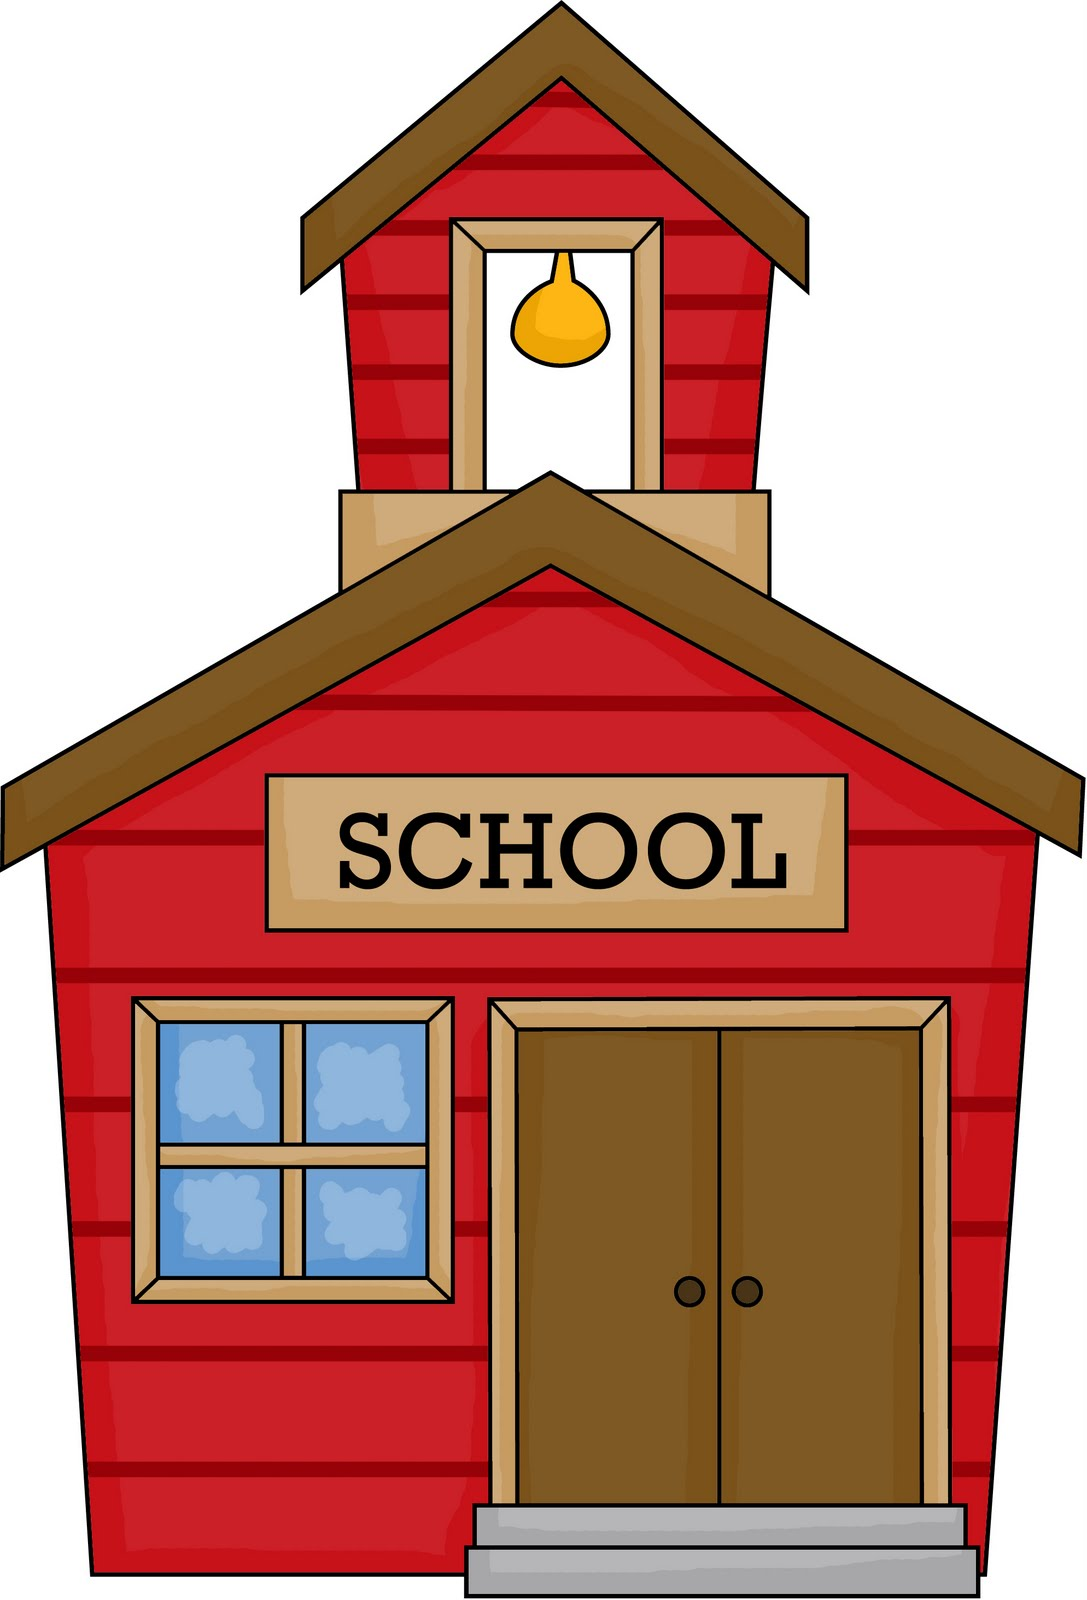 school%20house%20images